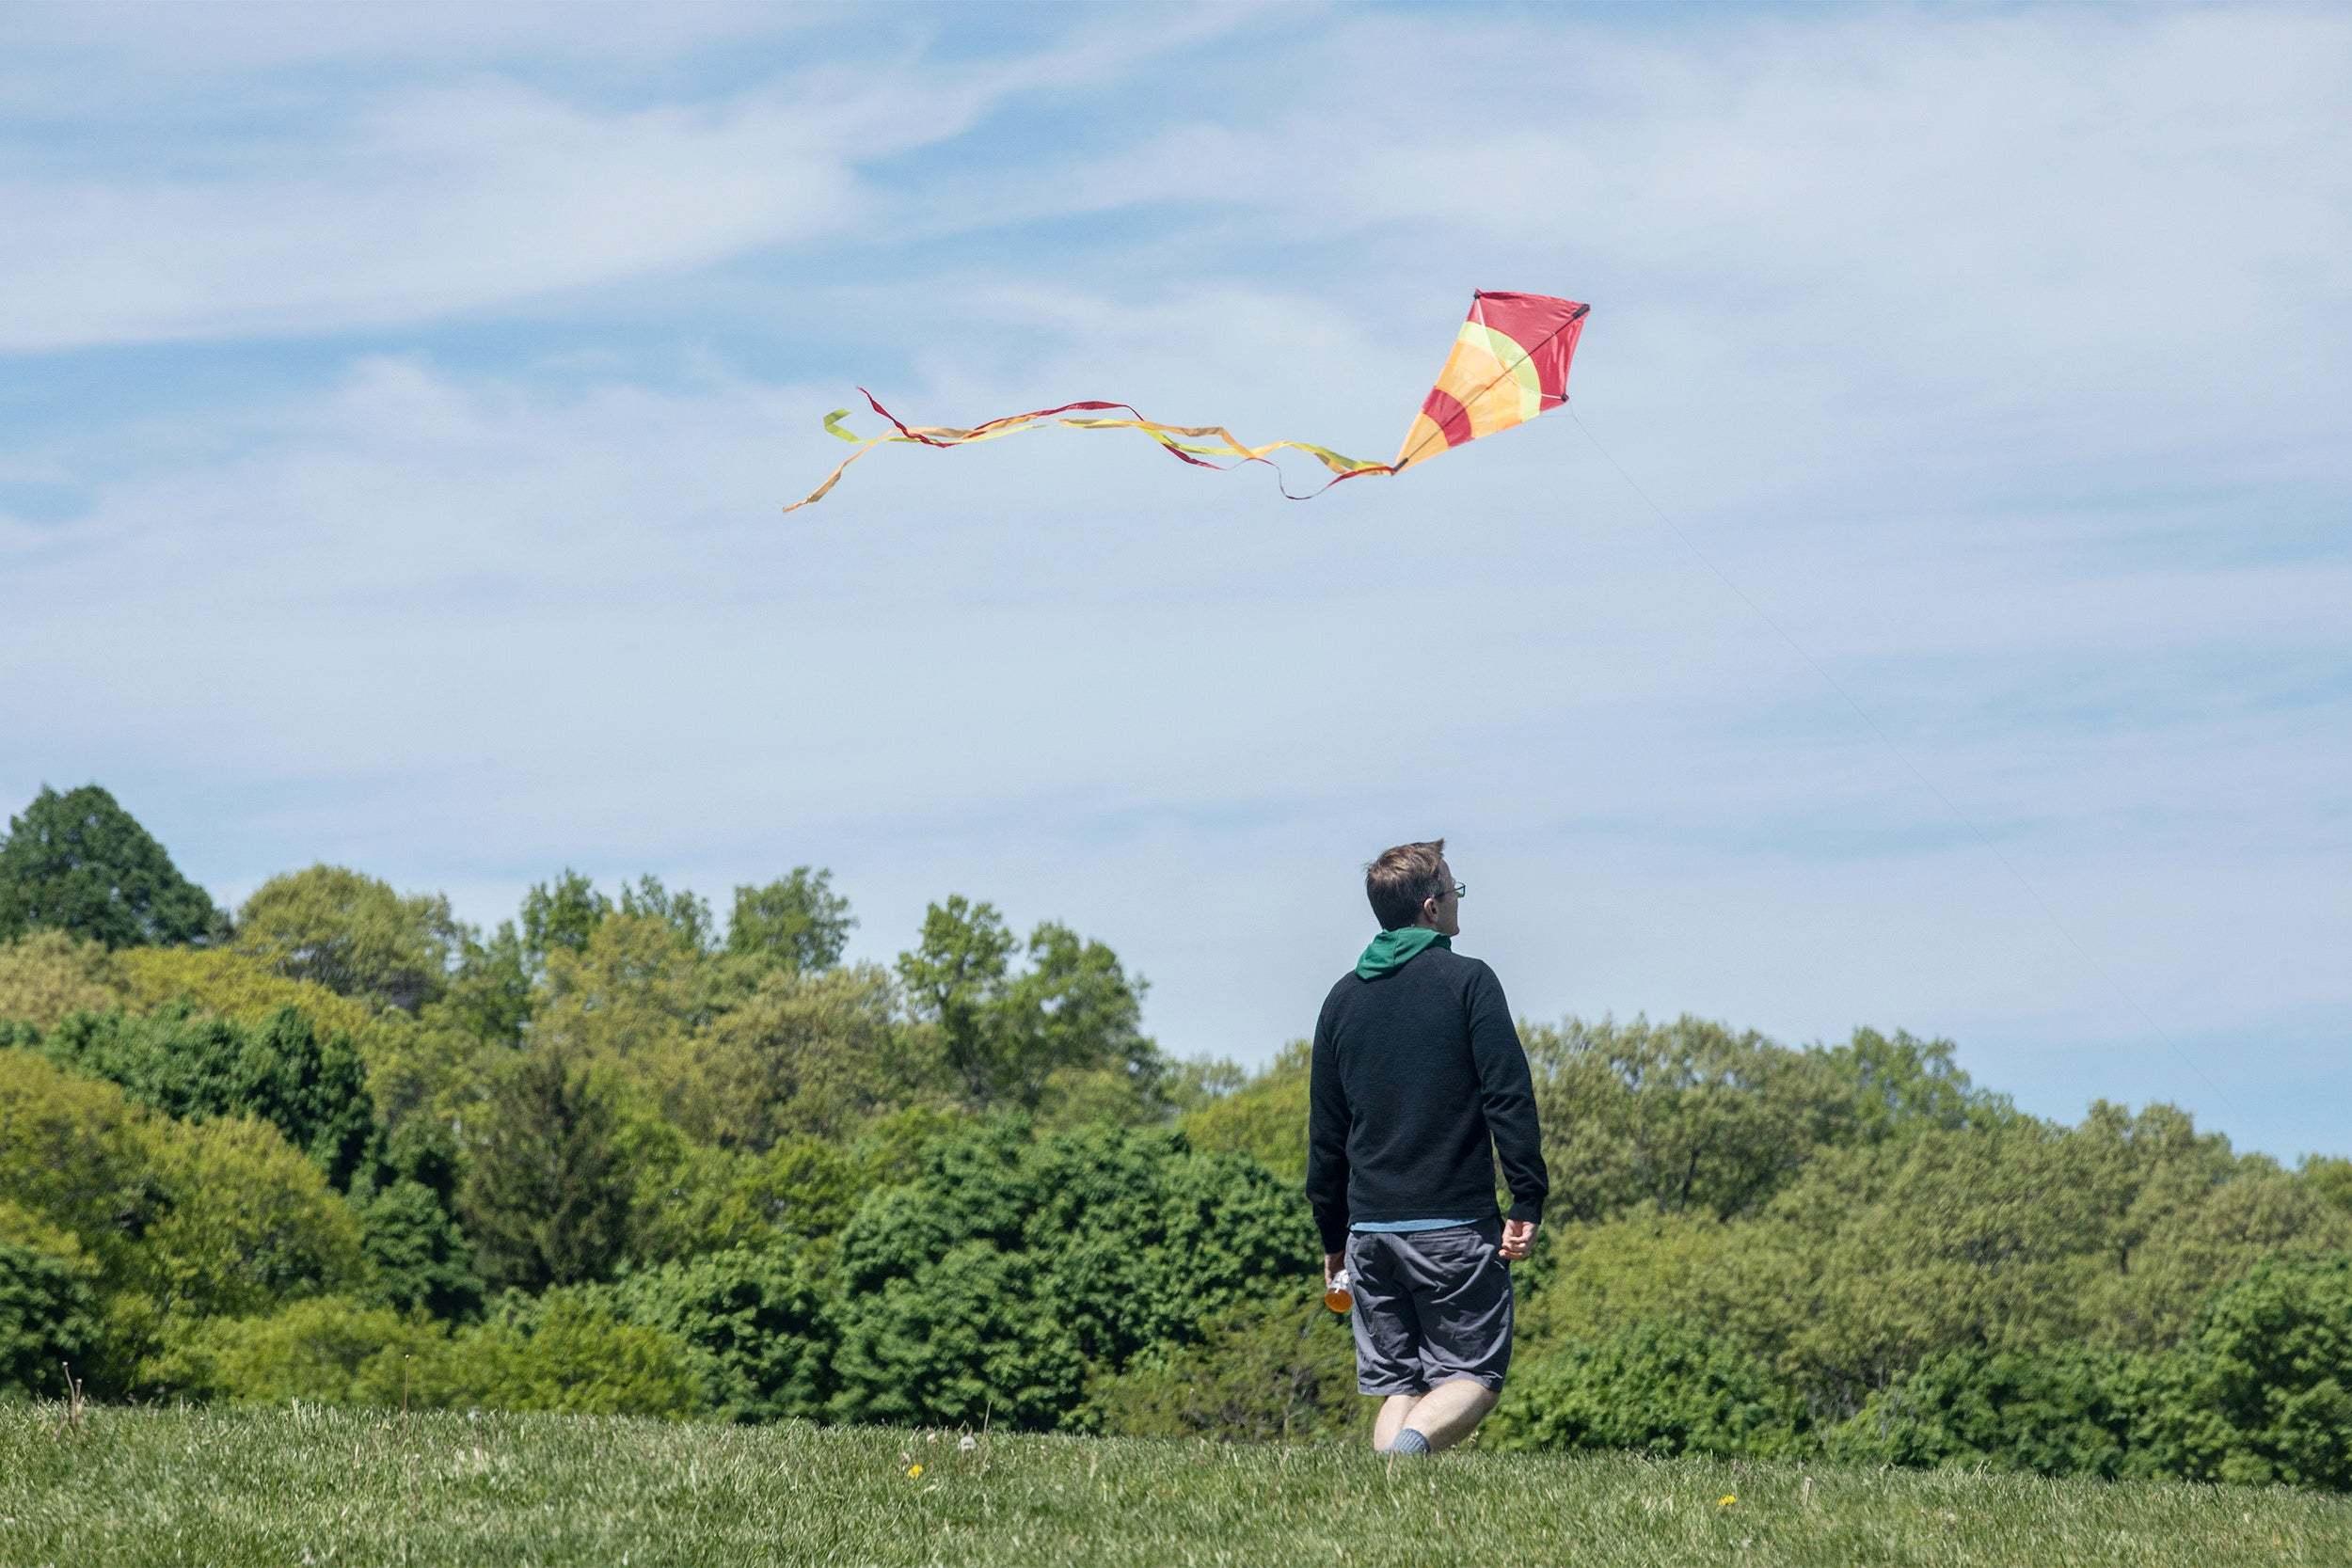 Man flying kite.